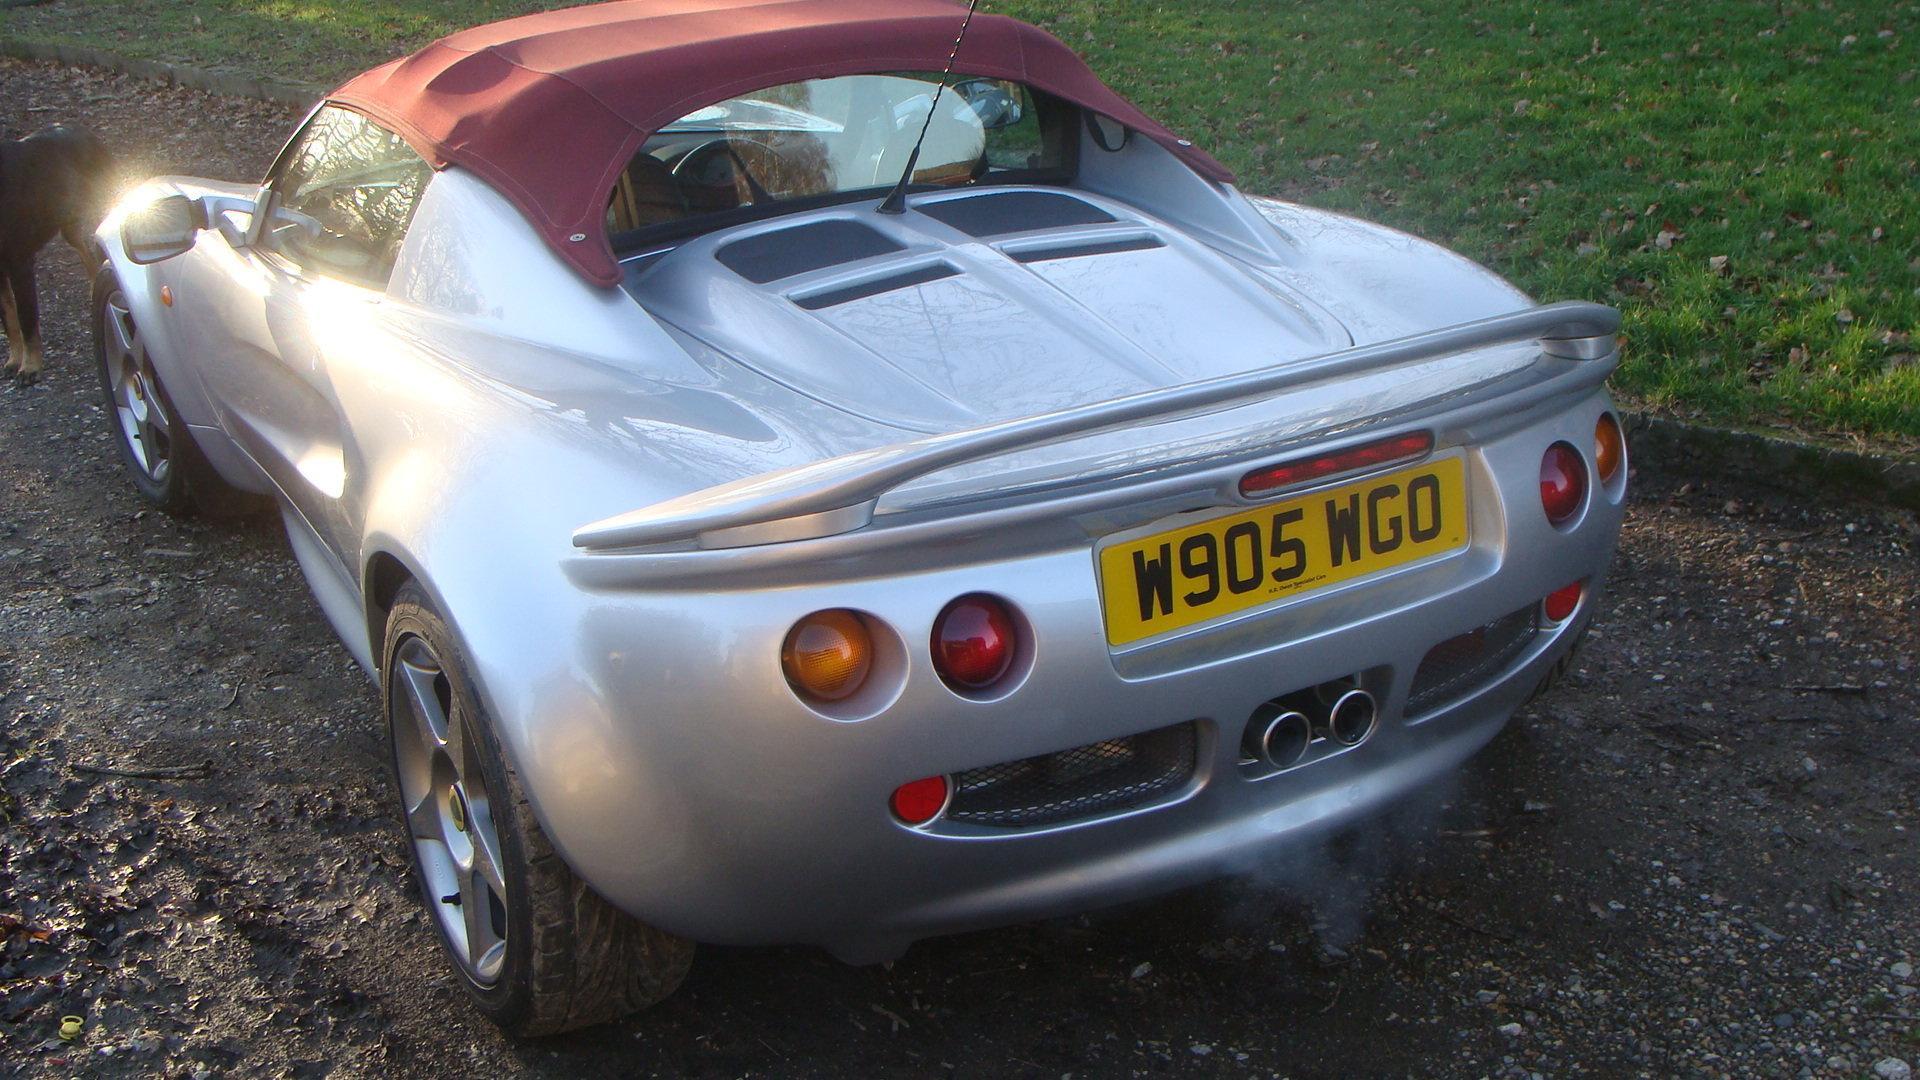 2000 Lotus Elise 160 Sport roadster For Sale (picture 5 of 6)